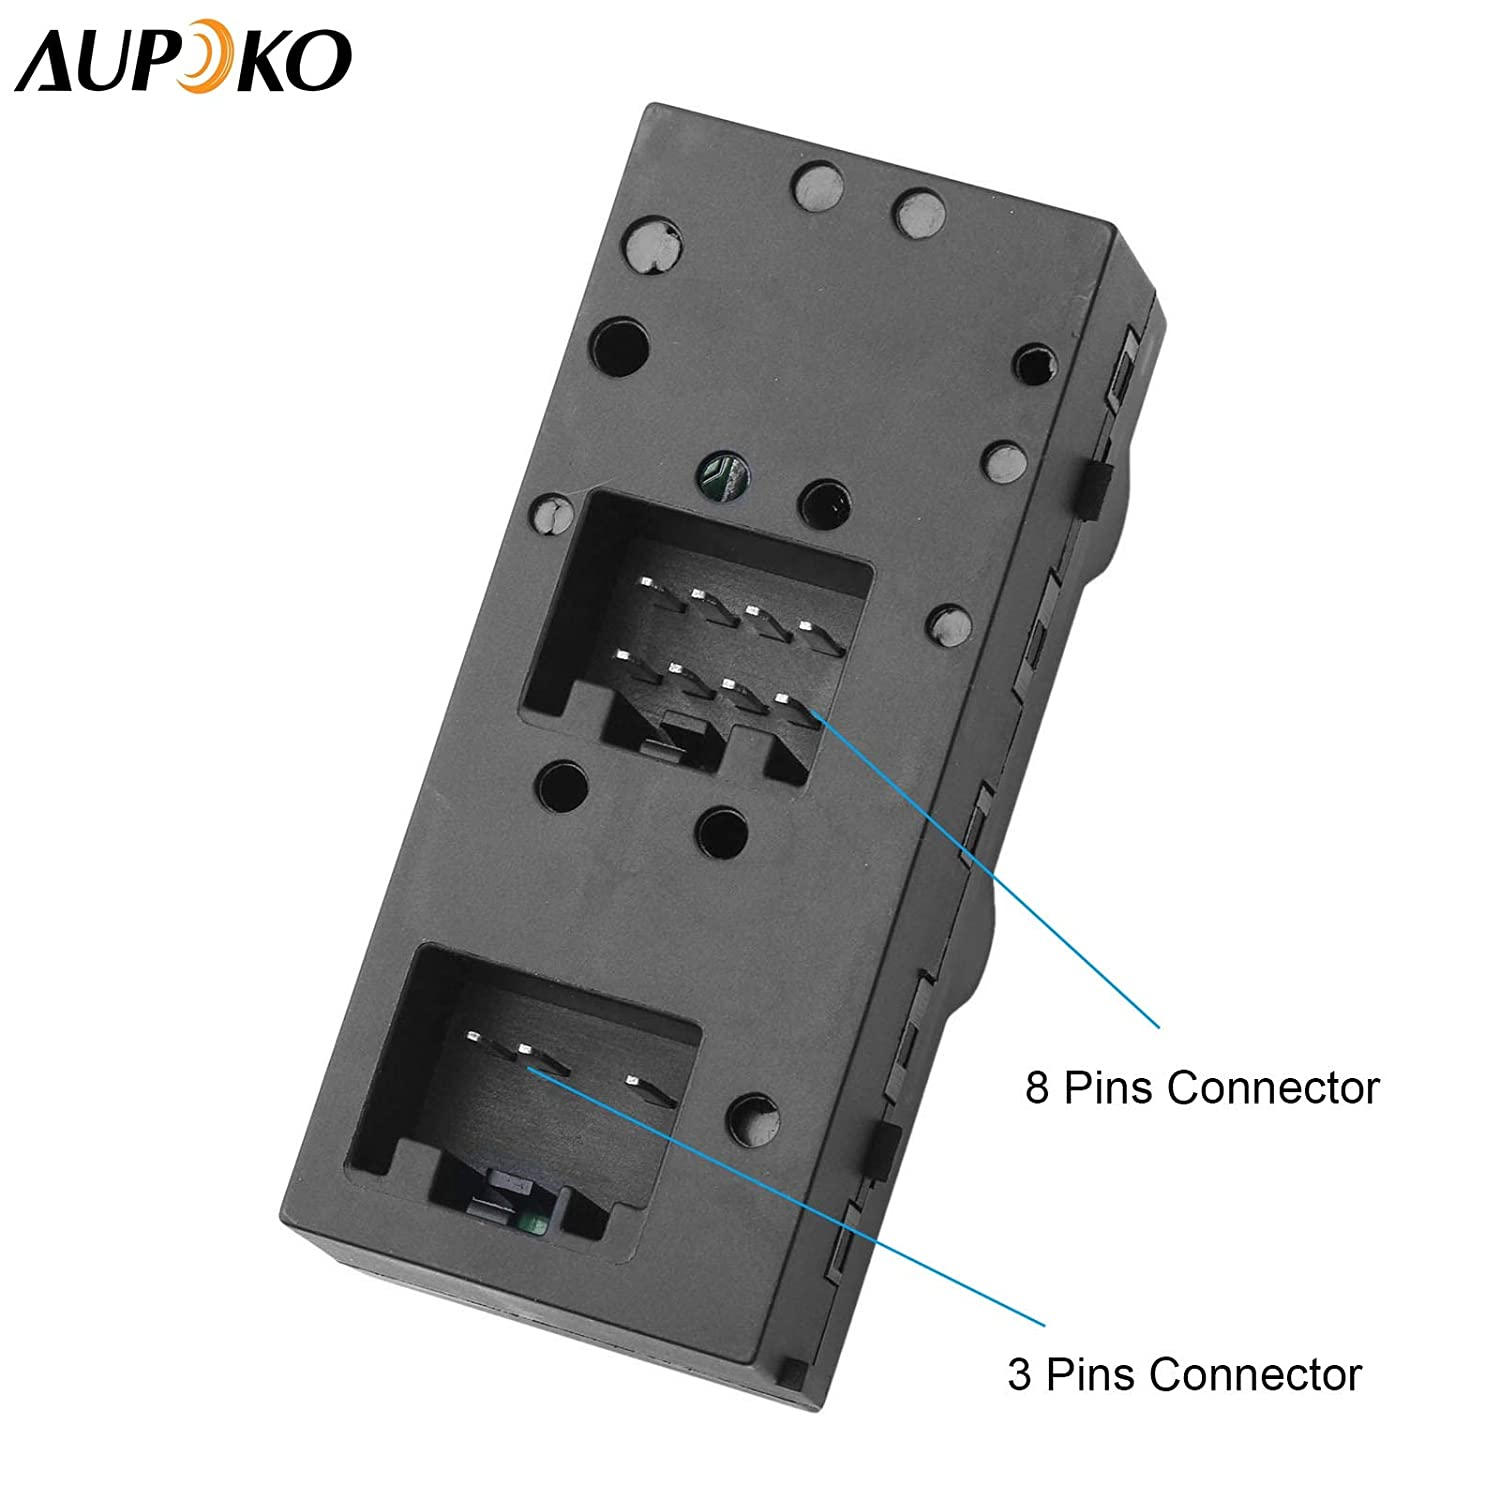 Replaces# 5L1Z-14529-AA 2003-2008 Ford Crown Victoria 2003-2006 Ford Expedition Aupoko Driver Side Master Power Window Switch 5L1Z14529AA 4L1Z-14529-AAA Fits for 2004-2008 Ford F-150